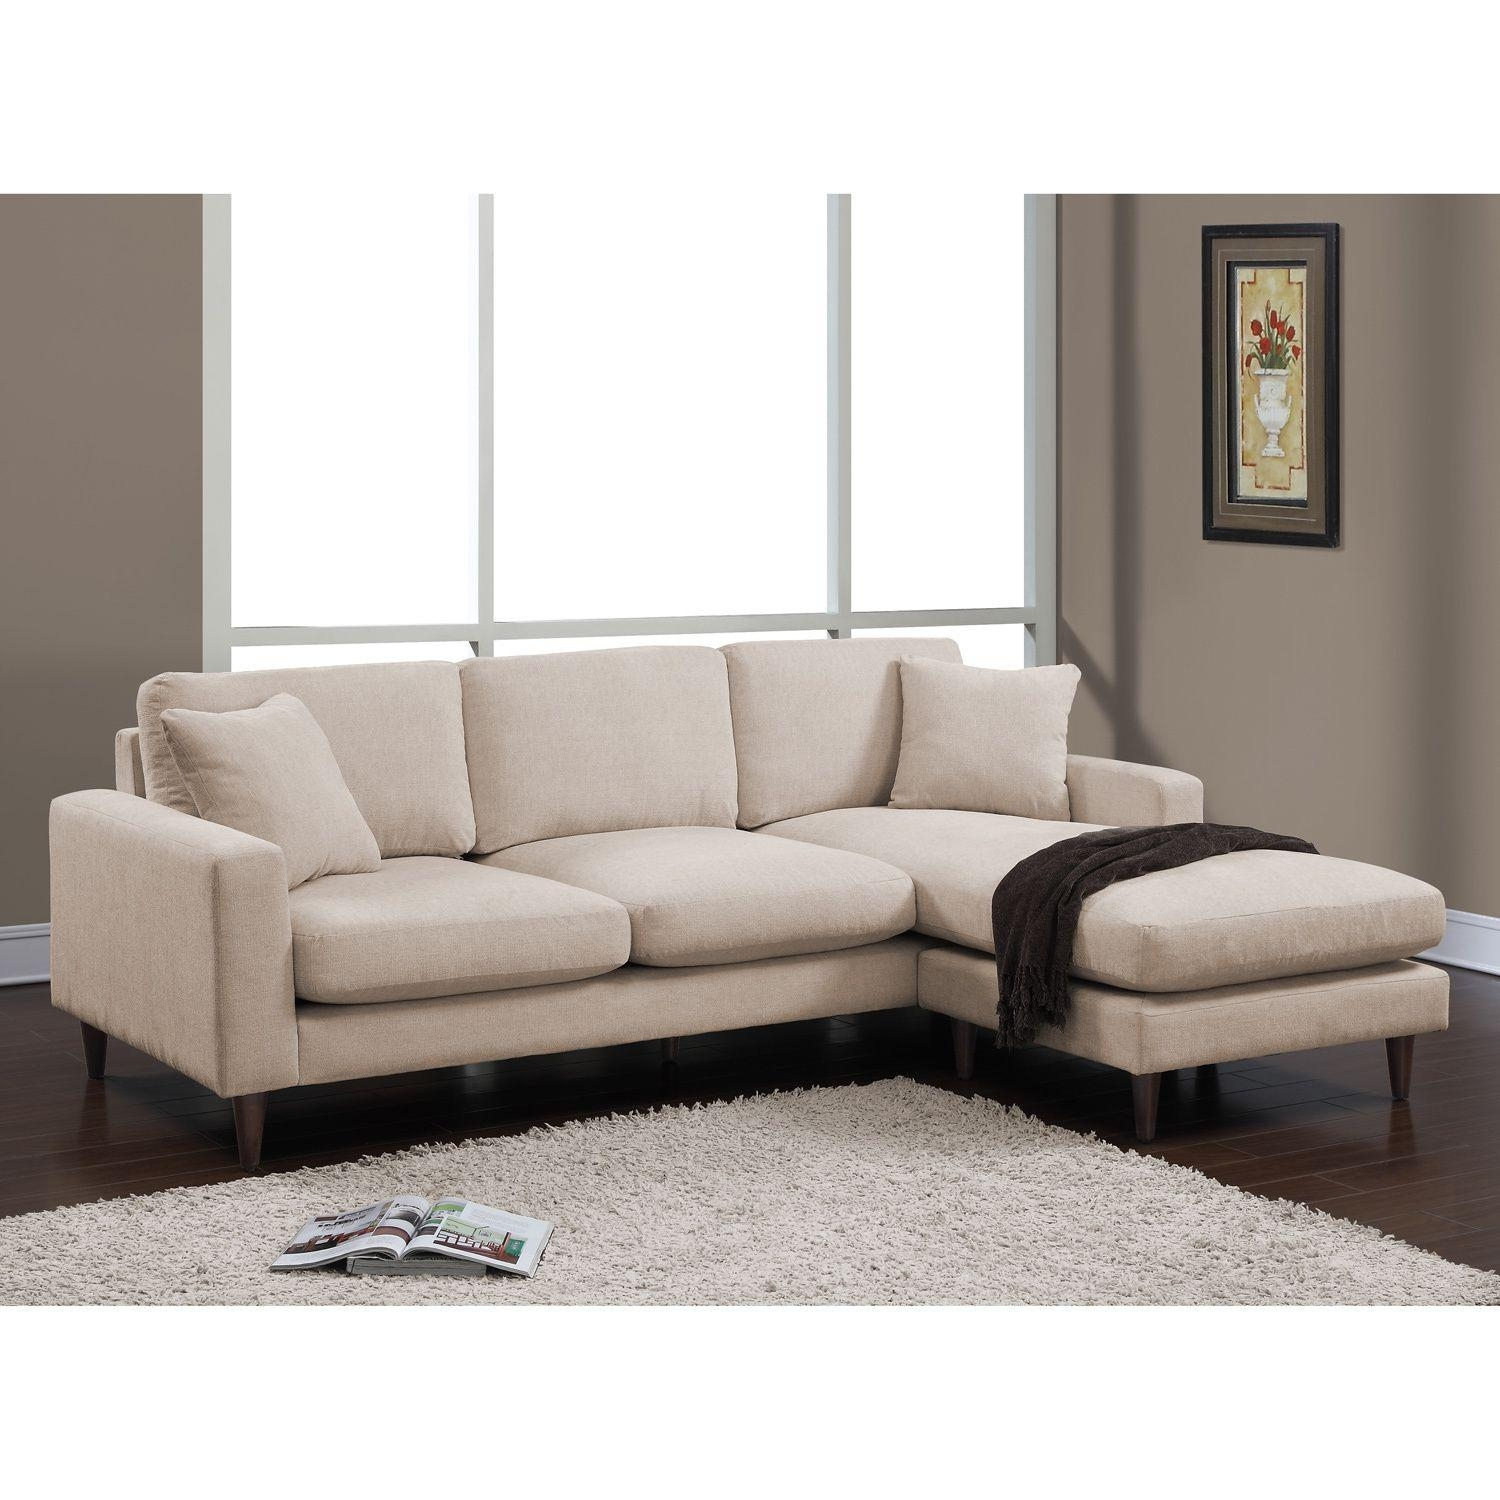 Sofas Center : Down Sectional Sofa Img 3386 Jpg Feather Asheville Throughout Down Filled Sofa Sectional (Image 9 of 15)